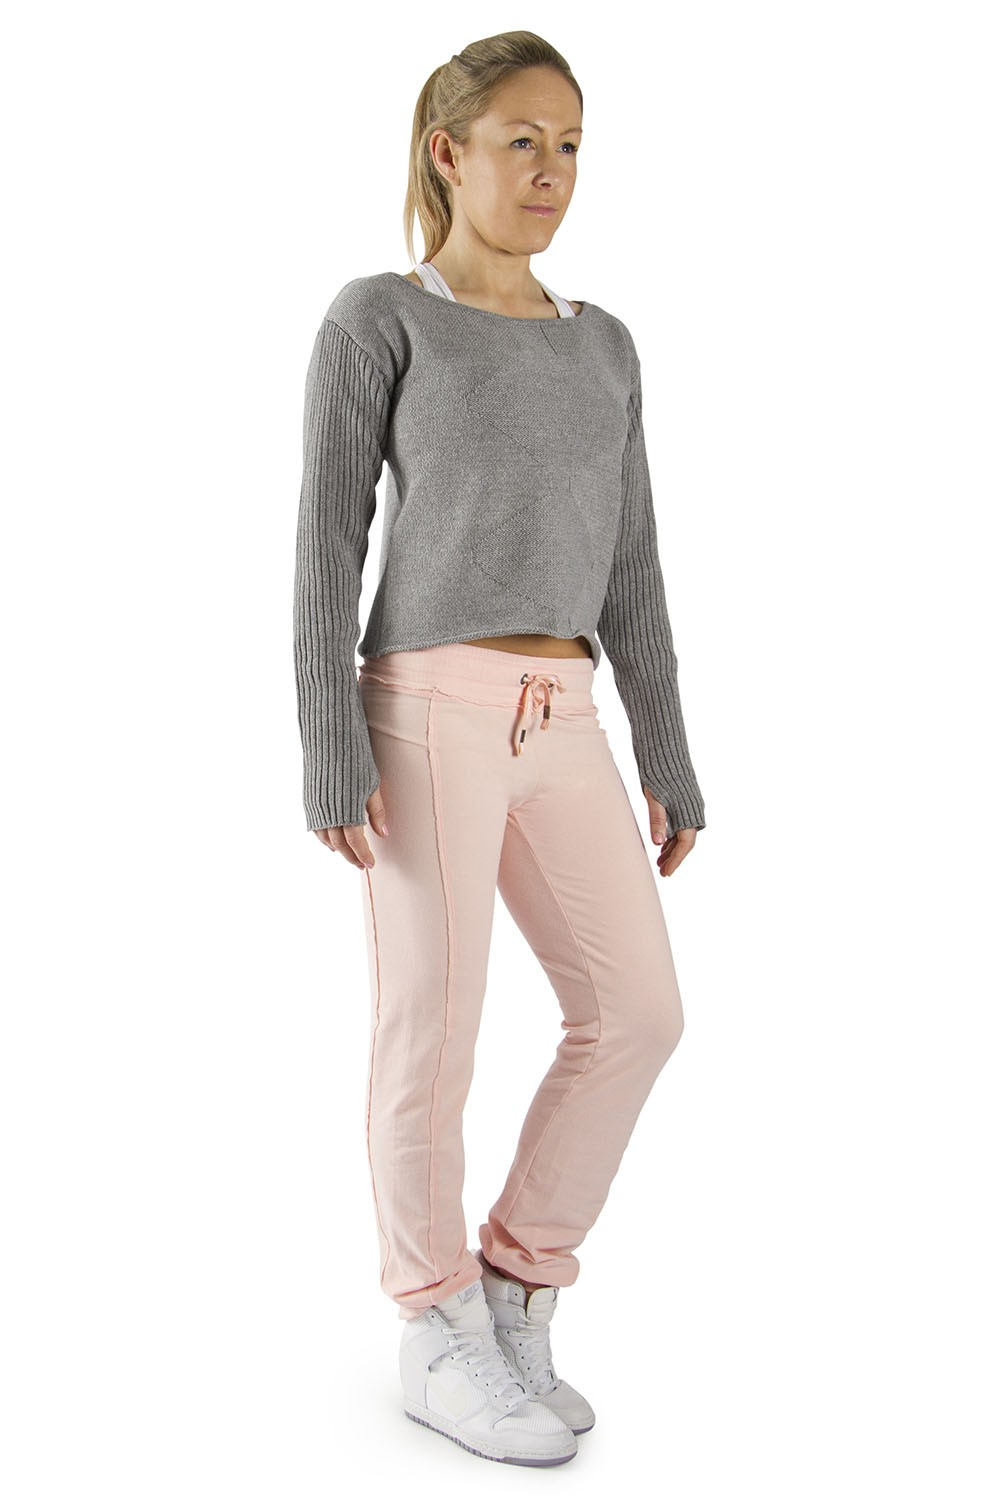 Boat Neck Knit Women's Dance Warmups